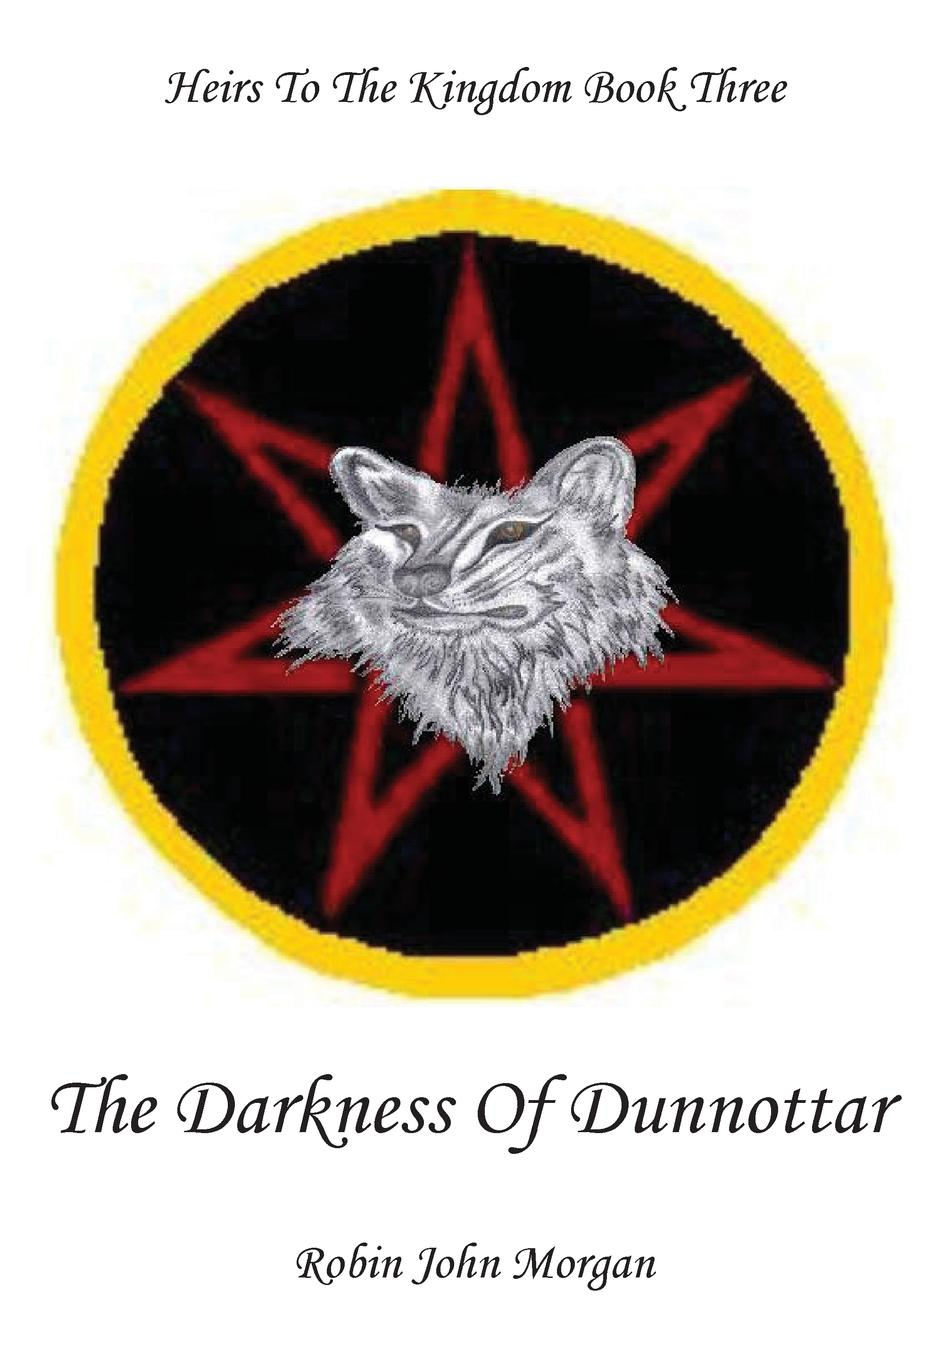 Heirs to the Kingdom Book Three: The Darkness of Dunnottar